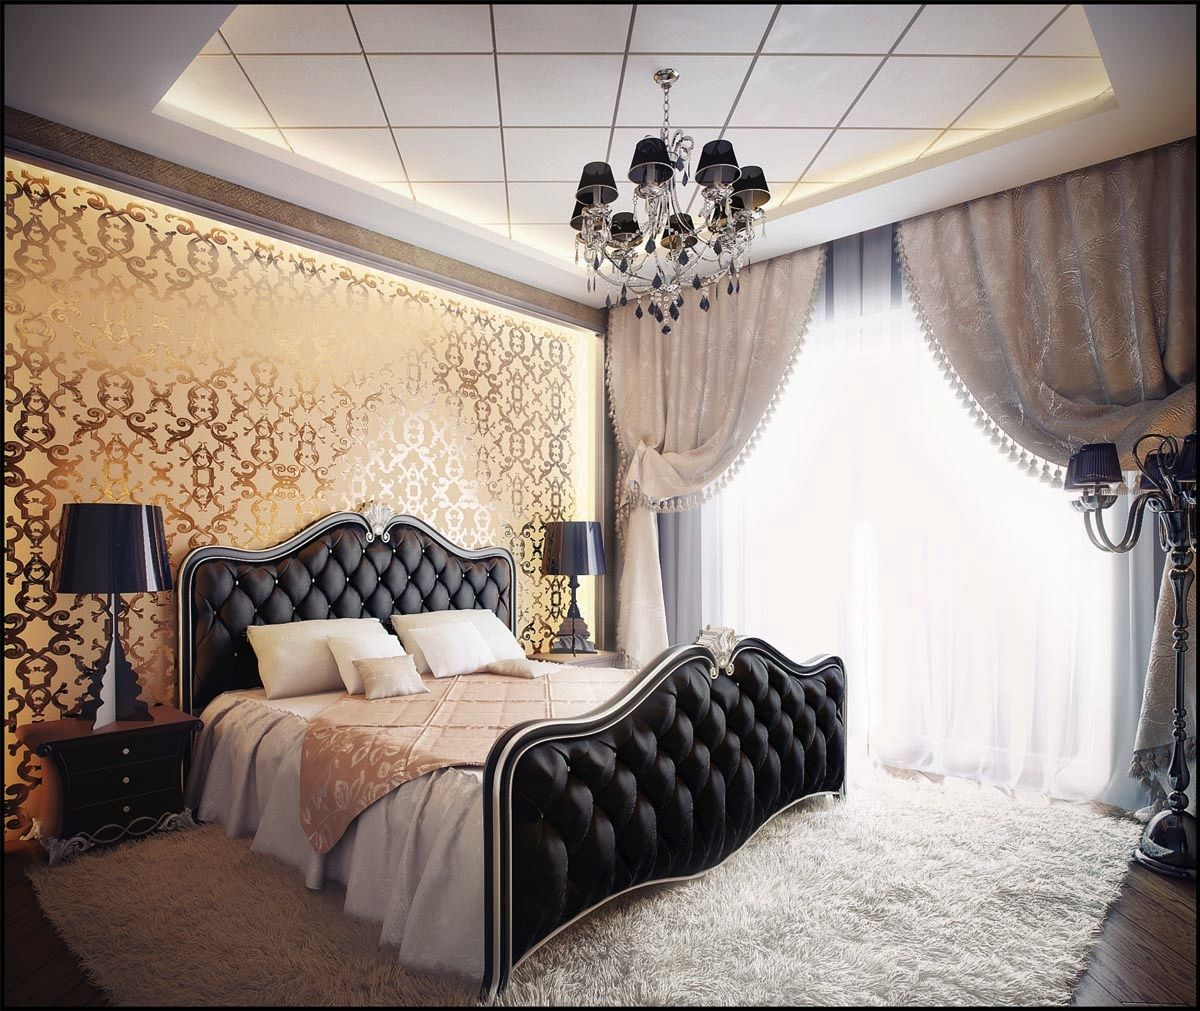 Decorating Elegant Bedroom Designs Adding a Perfect Classic and ...